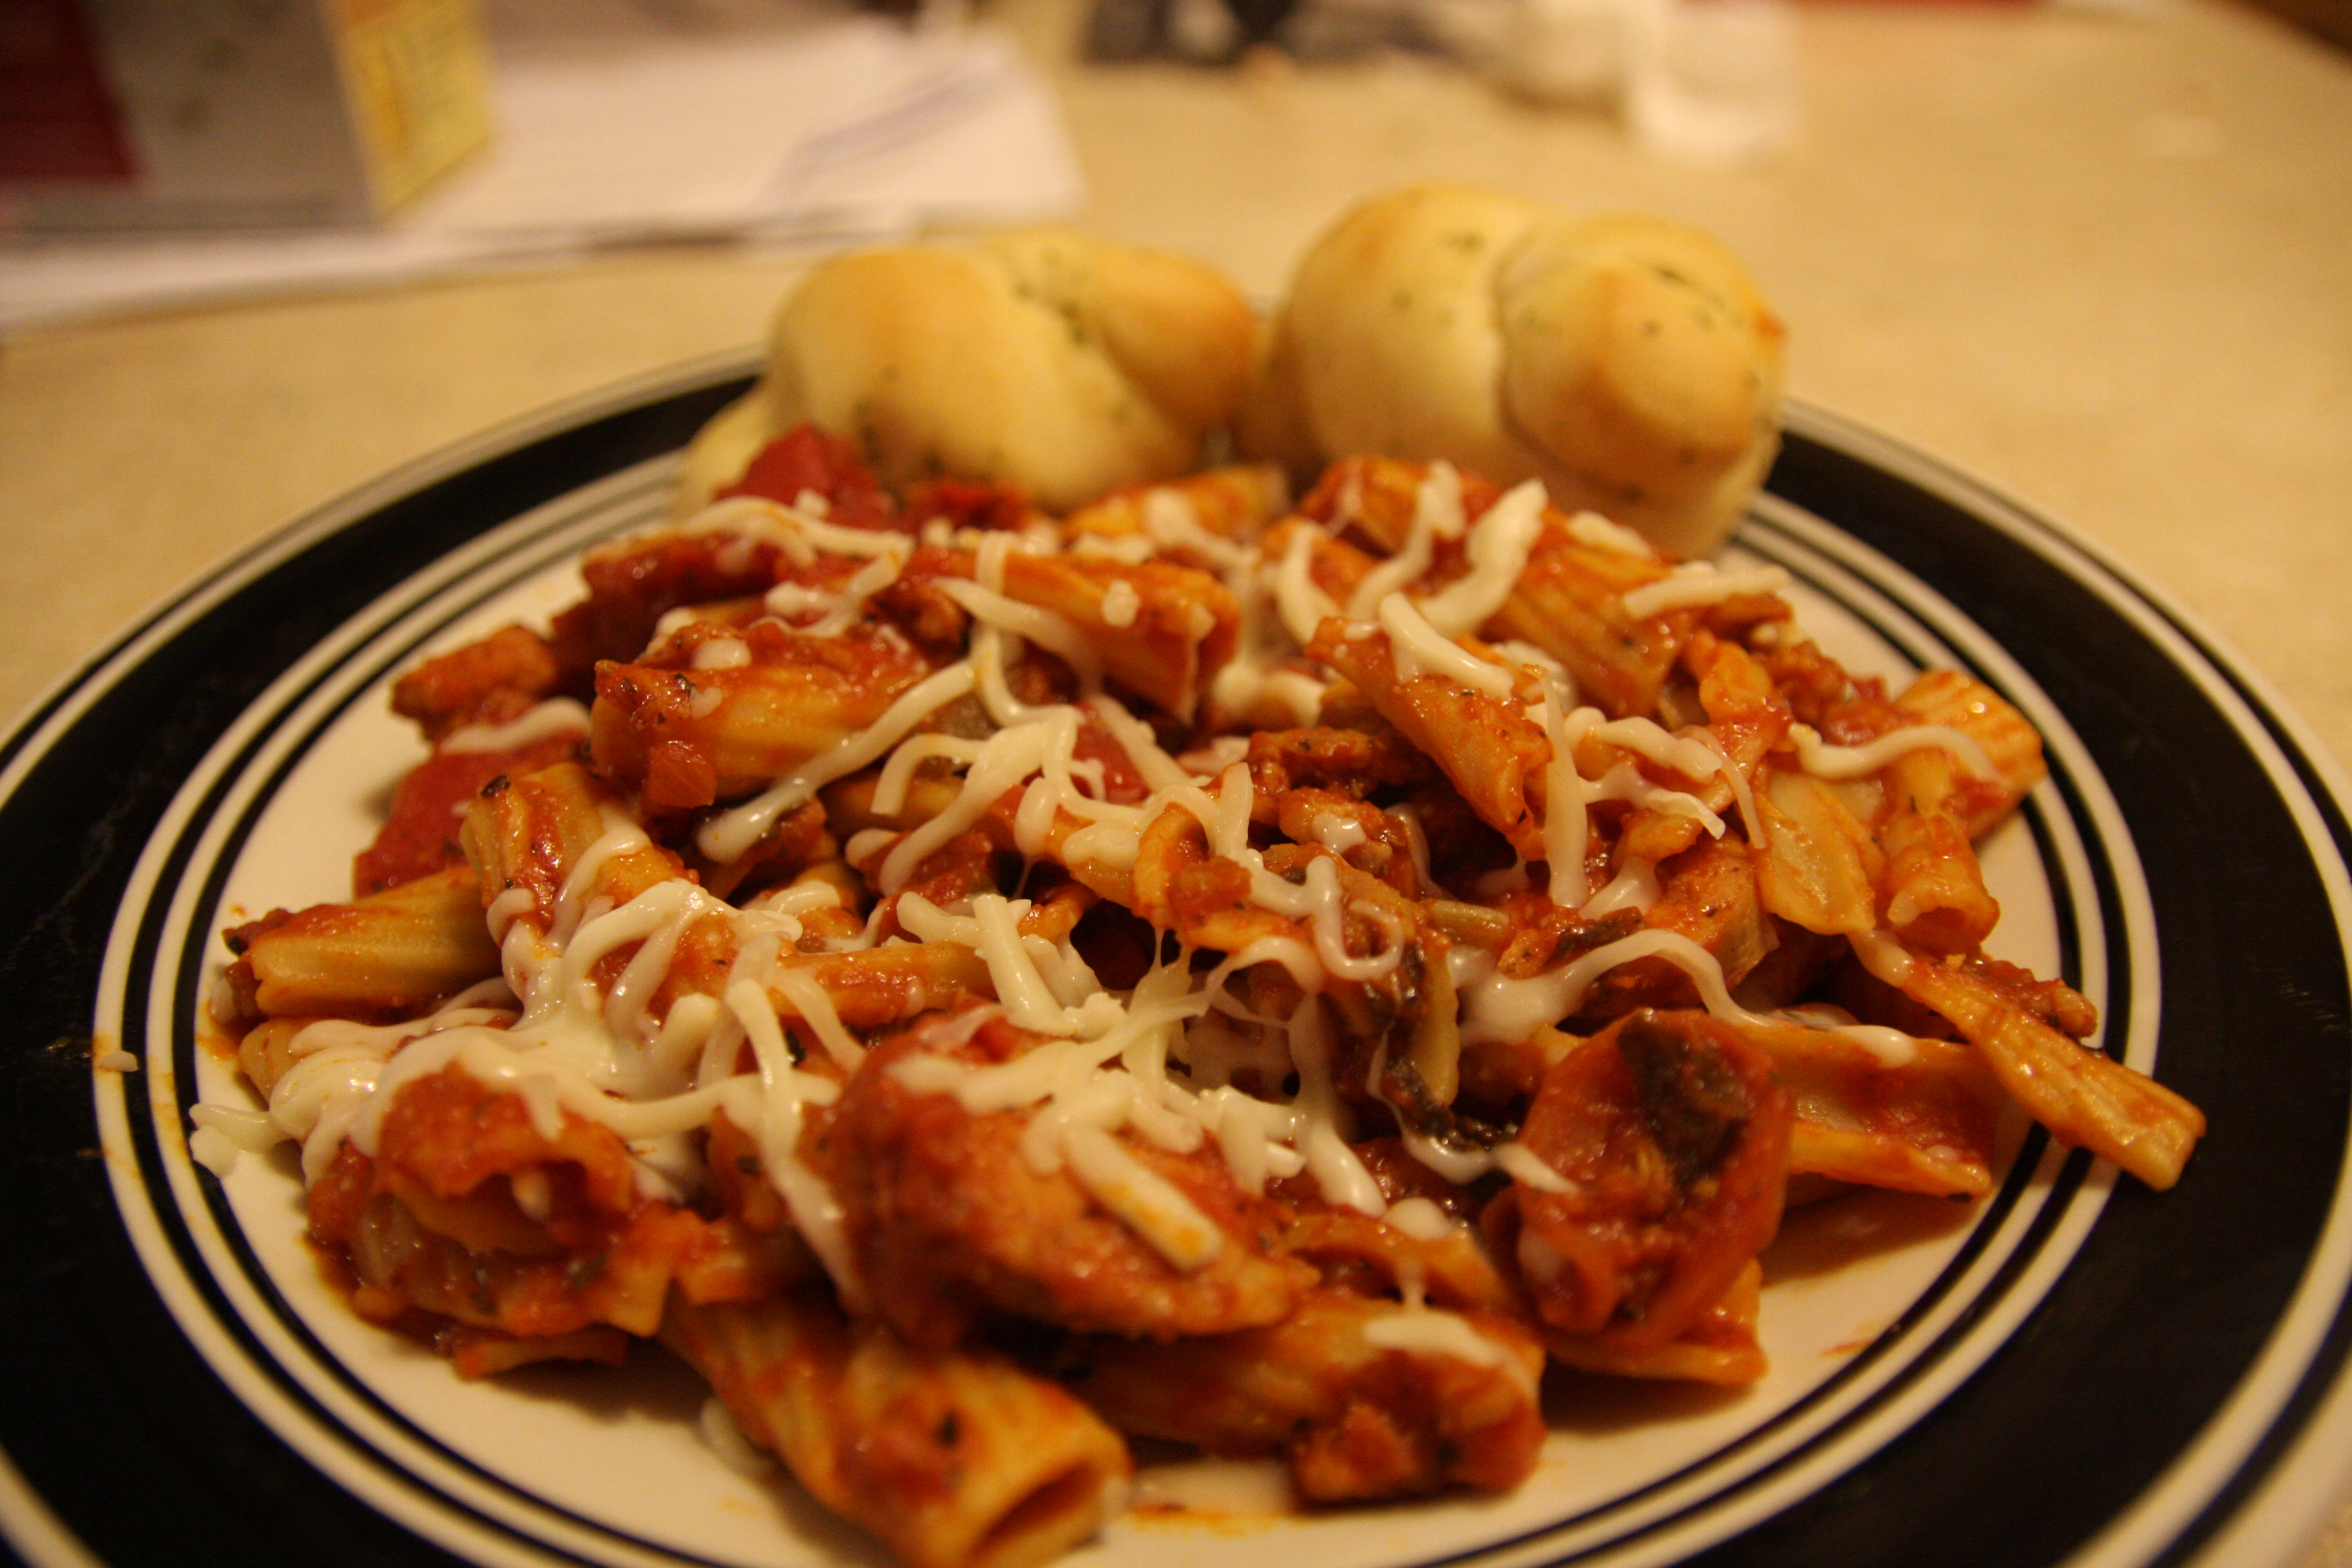 Rigatoni with Pizza Accents Ronald S.